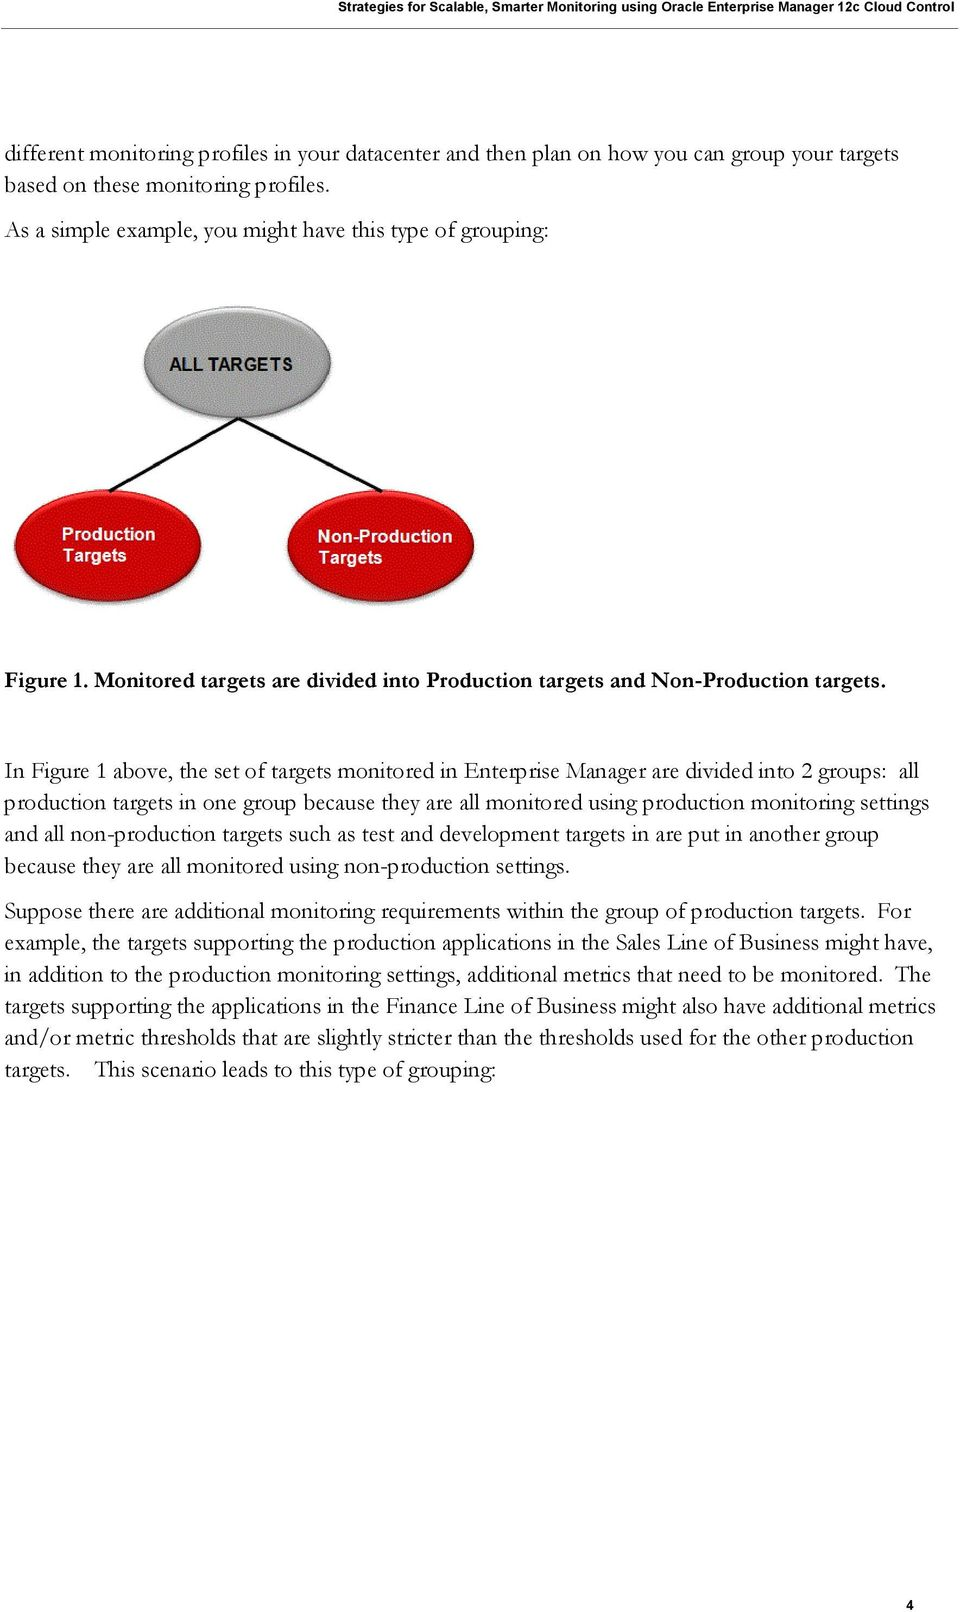 In Figure 1 above, the set of targets monitored in Enterprise Manager are divided into 2 groups: all production targets in one group because they are all monitored using production monitoring